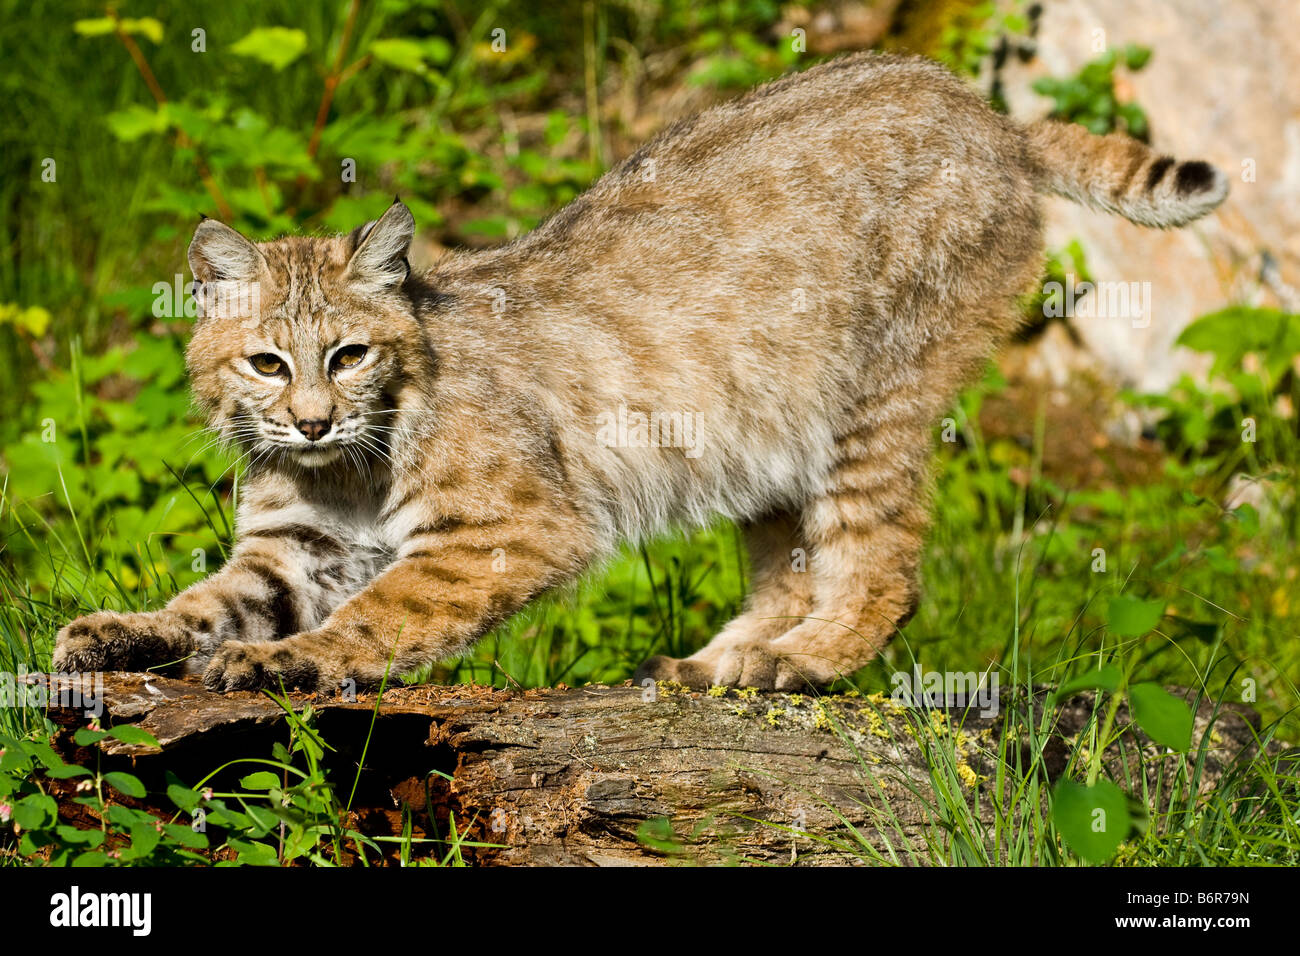 Bobcat  crouching and scratching a fallen log- controlled conditions - Stock Image